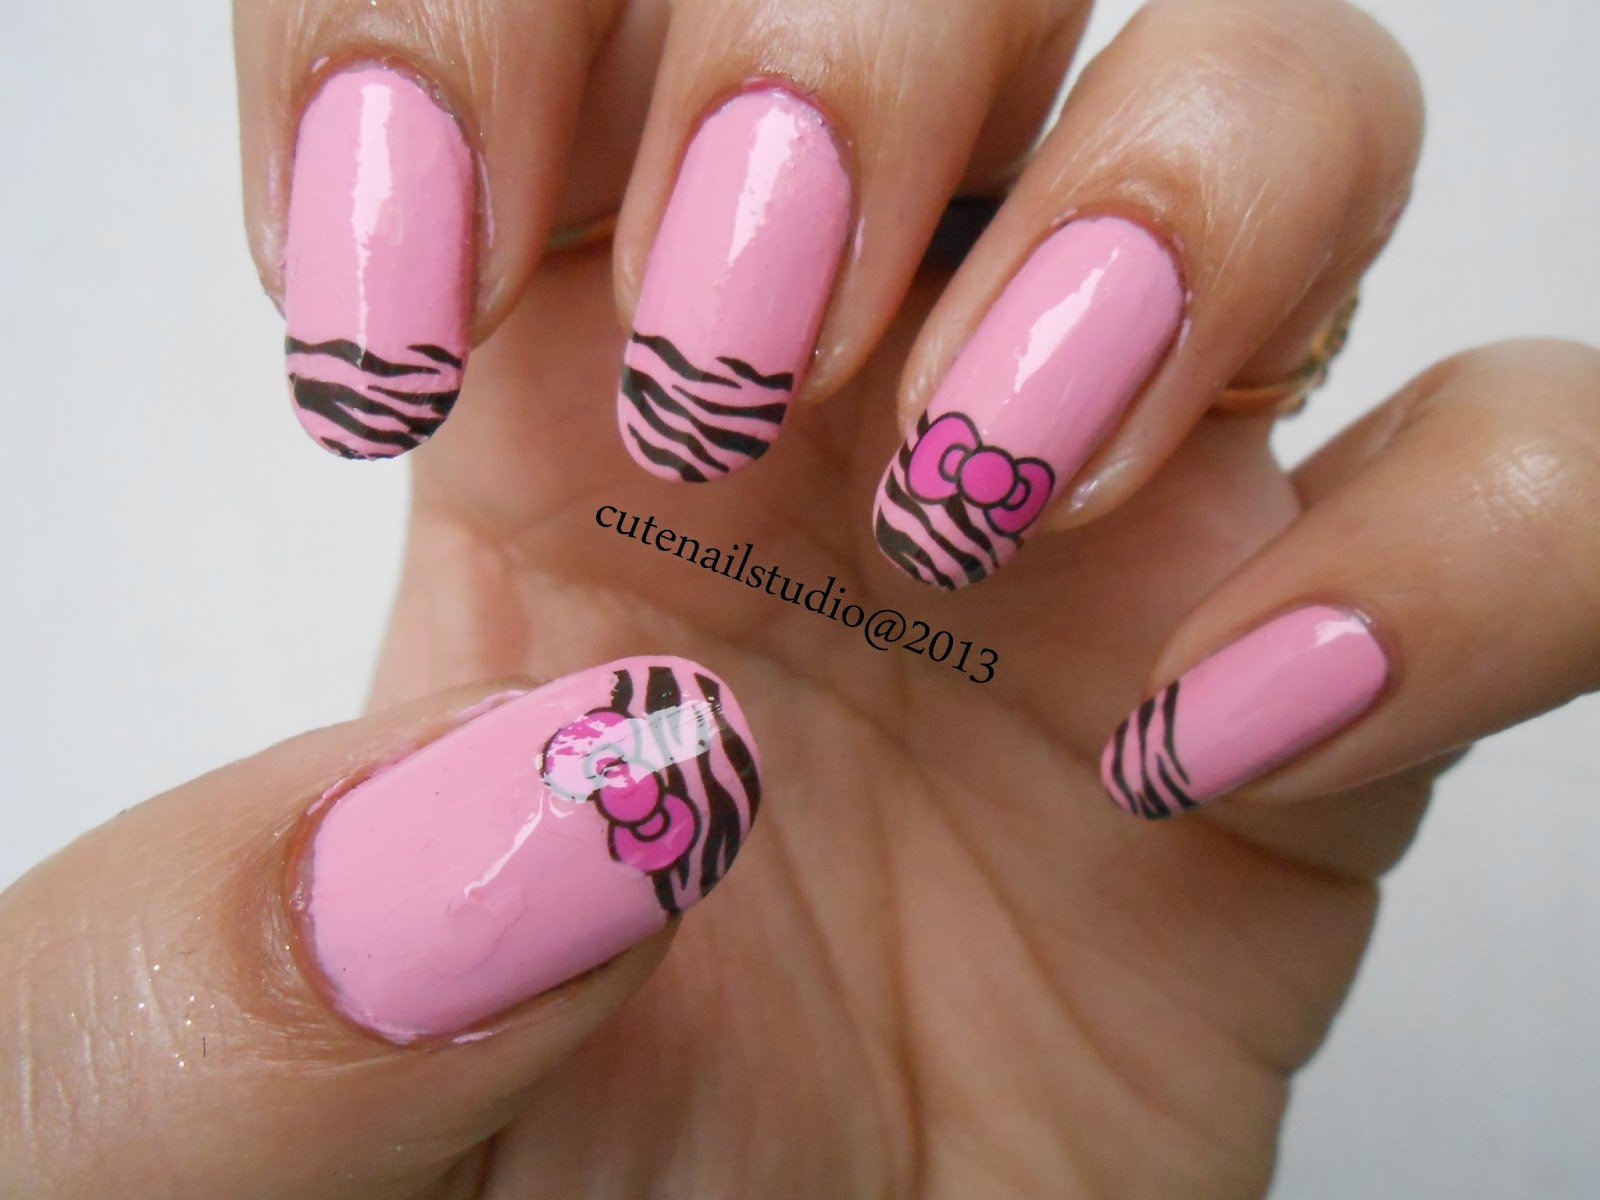 Cute nails: OPI pink friday: Nicki Minaj collection